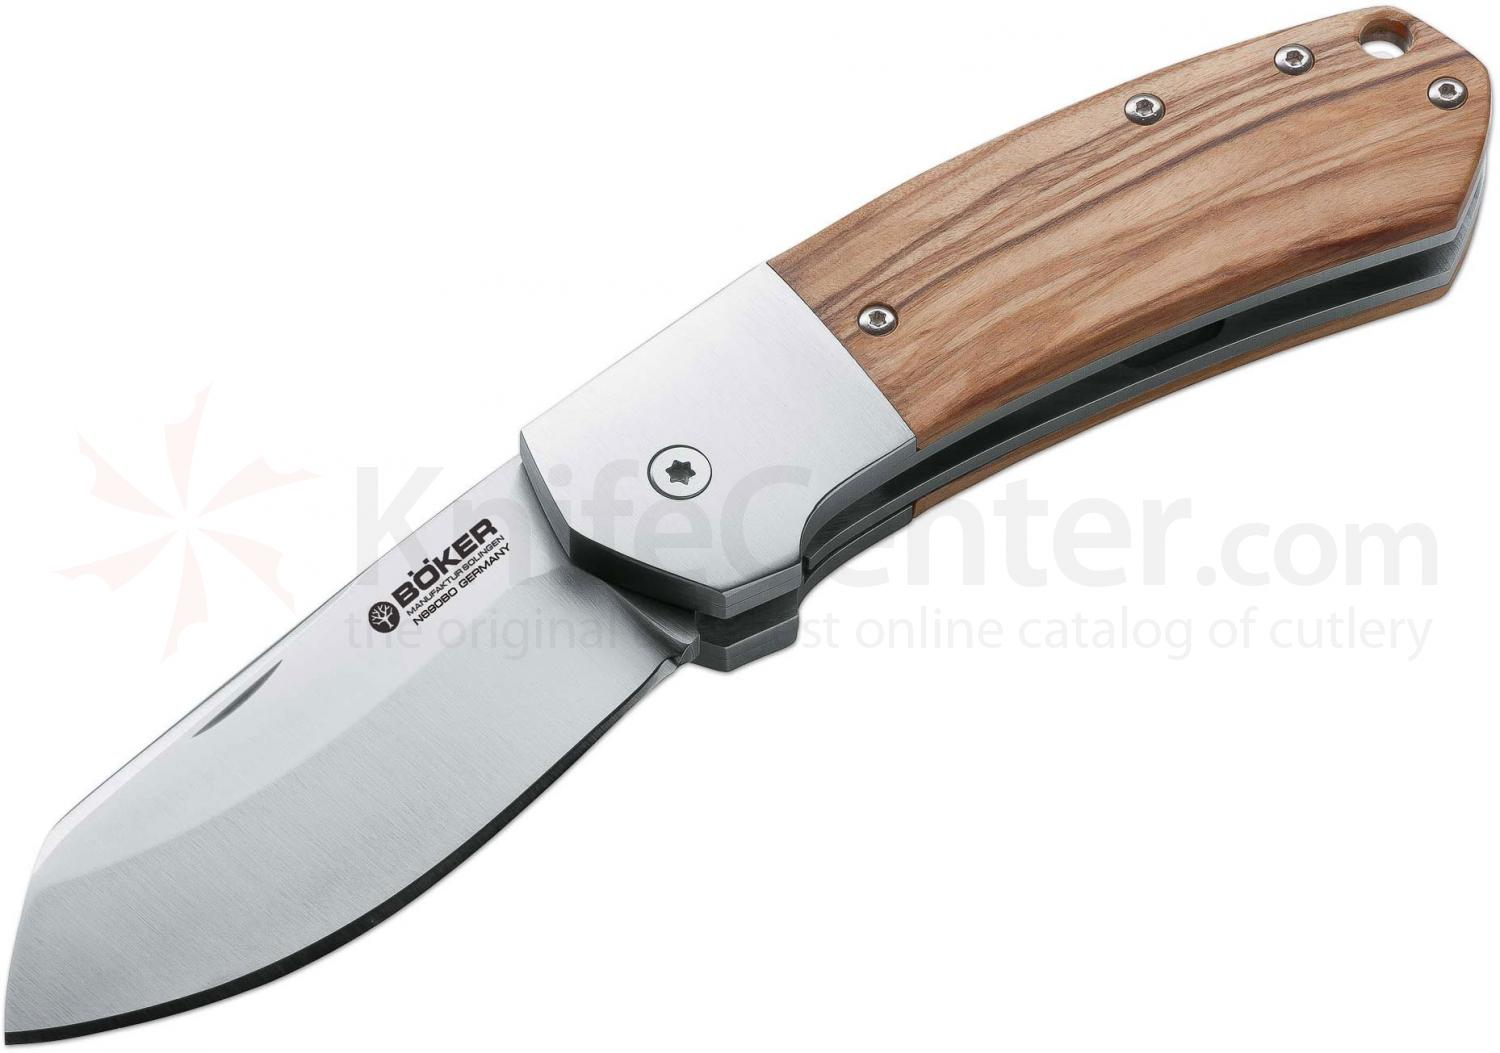 Boker Arctos 42 Jens Anso Folding Knife 2-7/8 inch N690BO Blade, Olive Wood Handles